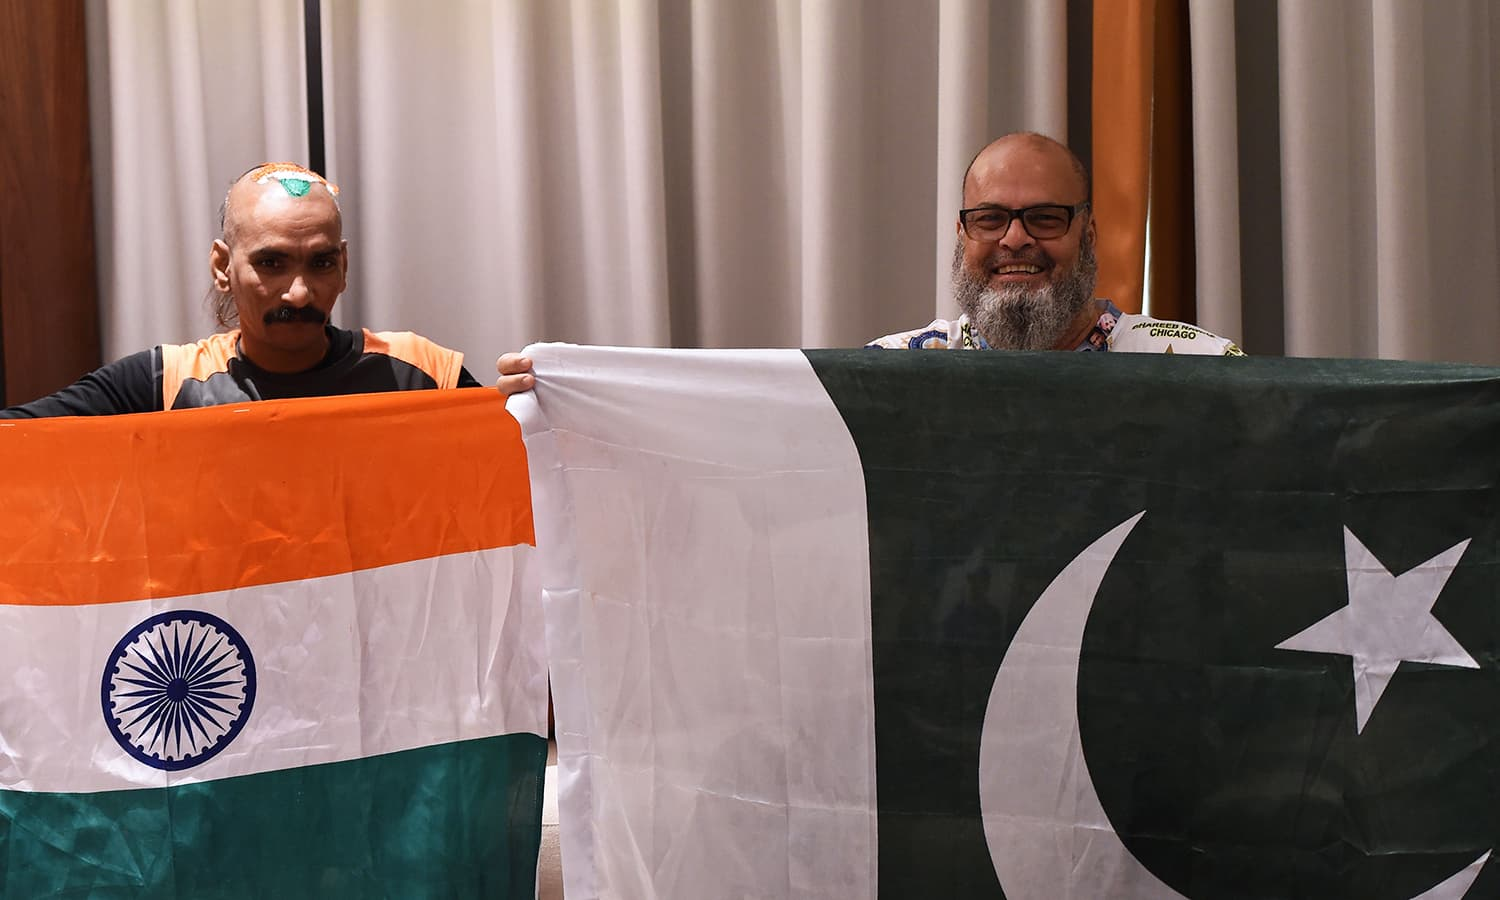 Sudhir Kumar (L) and Pakistan cricket fan Mohammad Basheer hold their respective national flags as they pose for a picture at a hotel in Dubai. — AFP